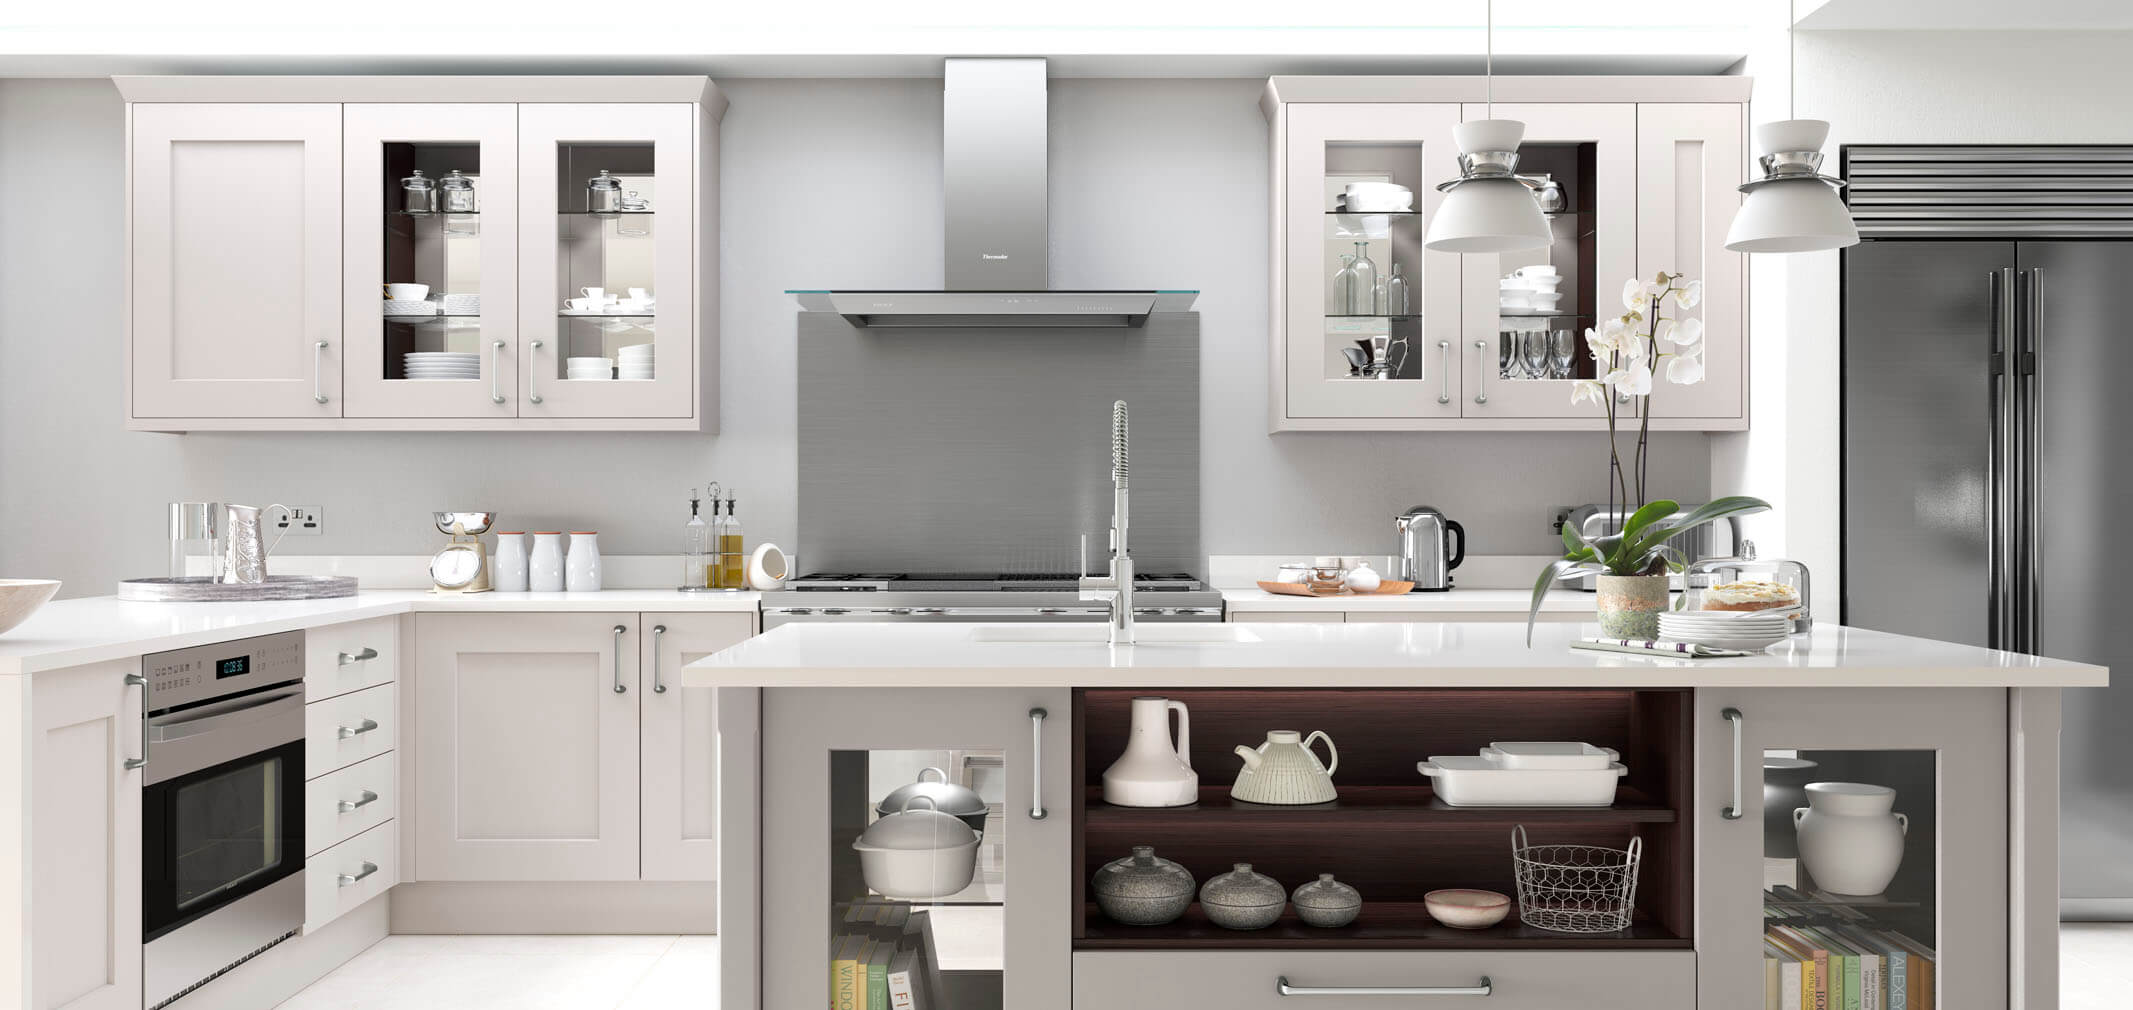 Premium kitchen suppliers - the trade supplier for high end kitchens